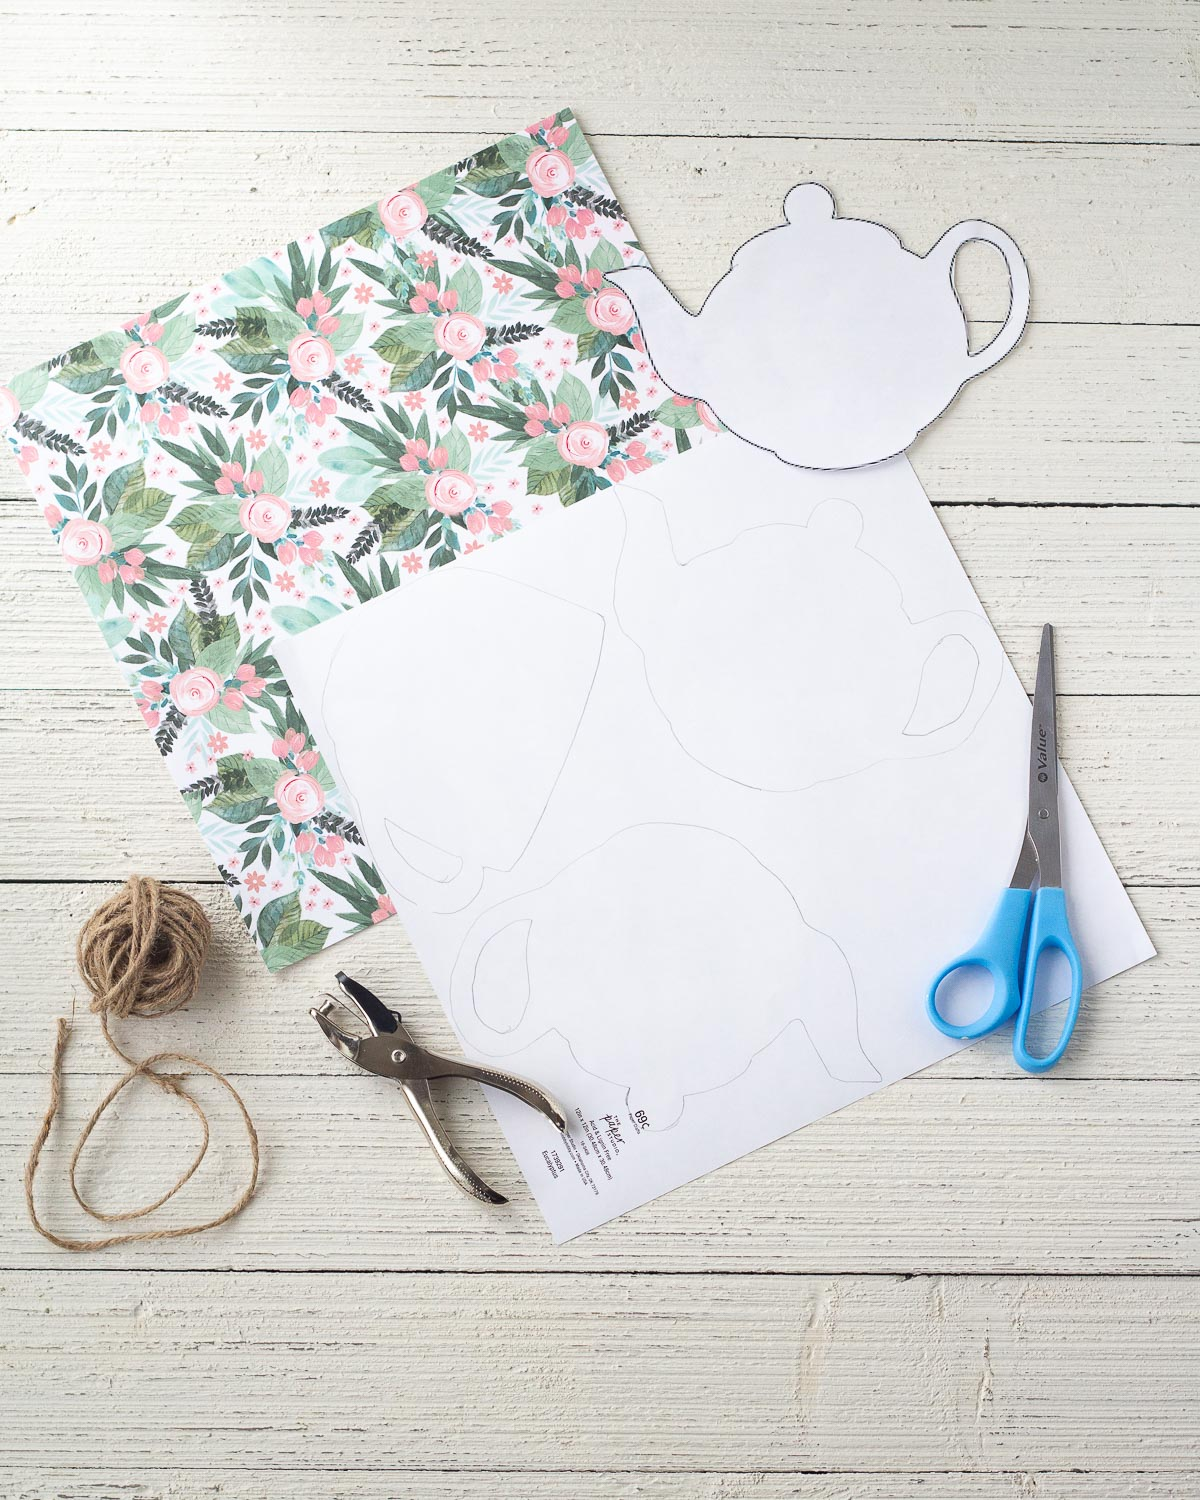 Tracing teapots and teacups onto scrapbook paper.